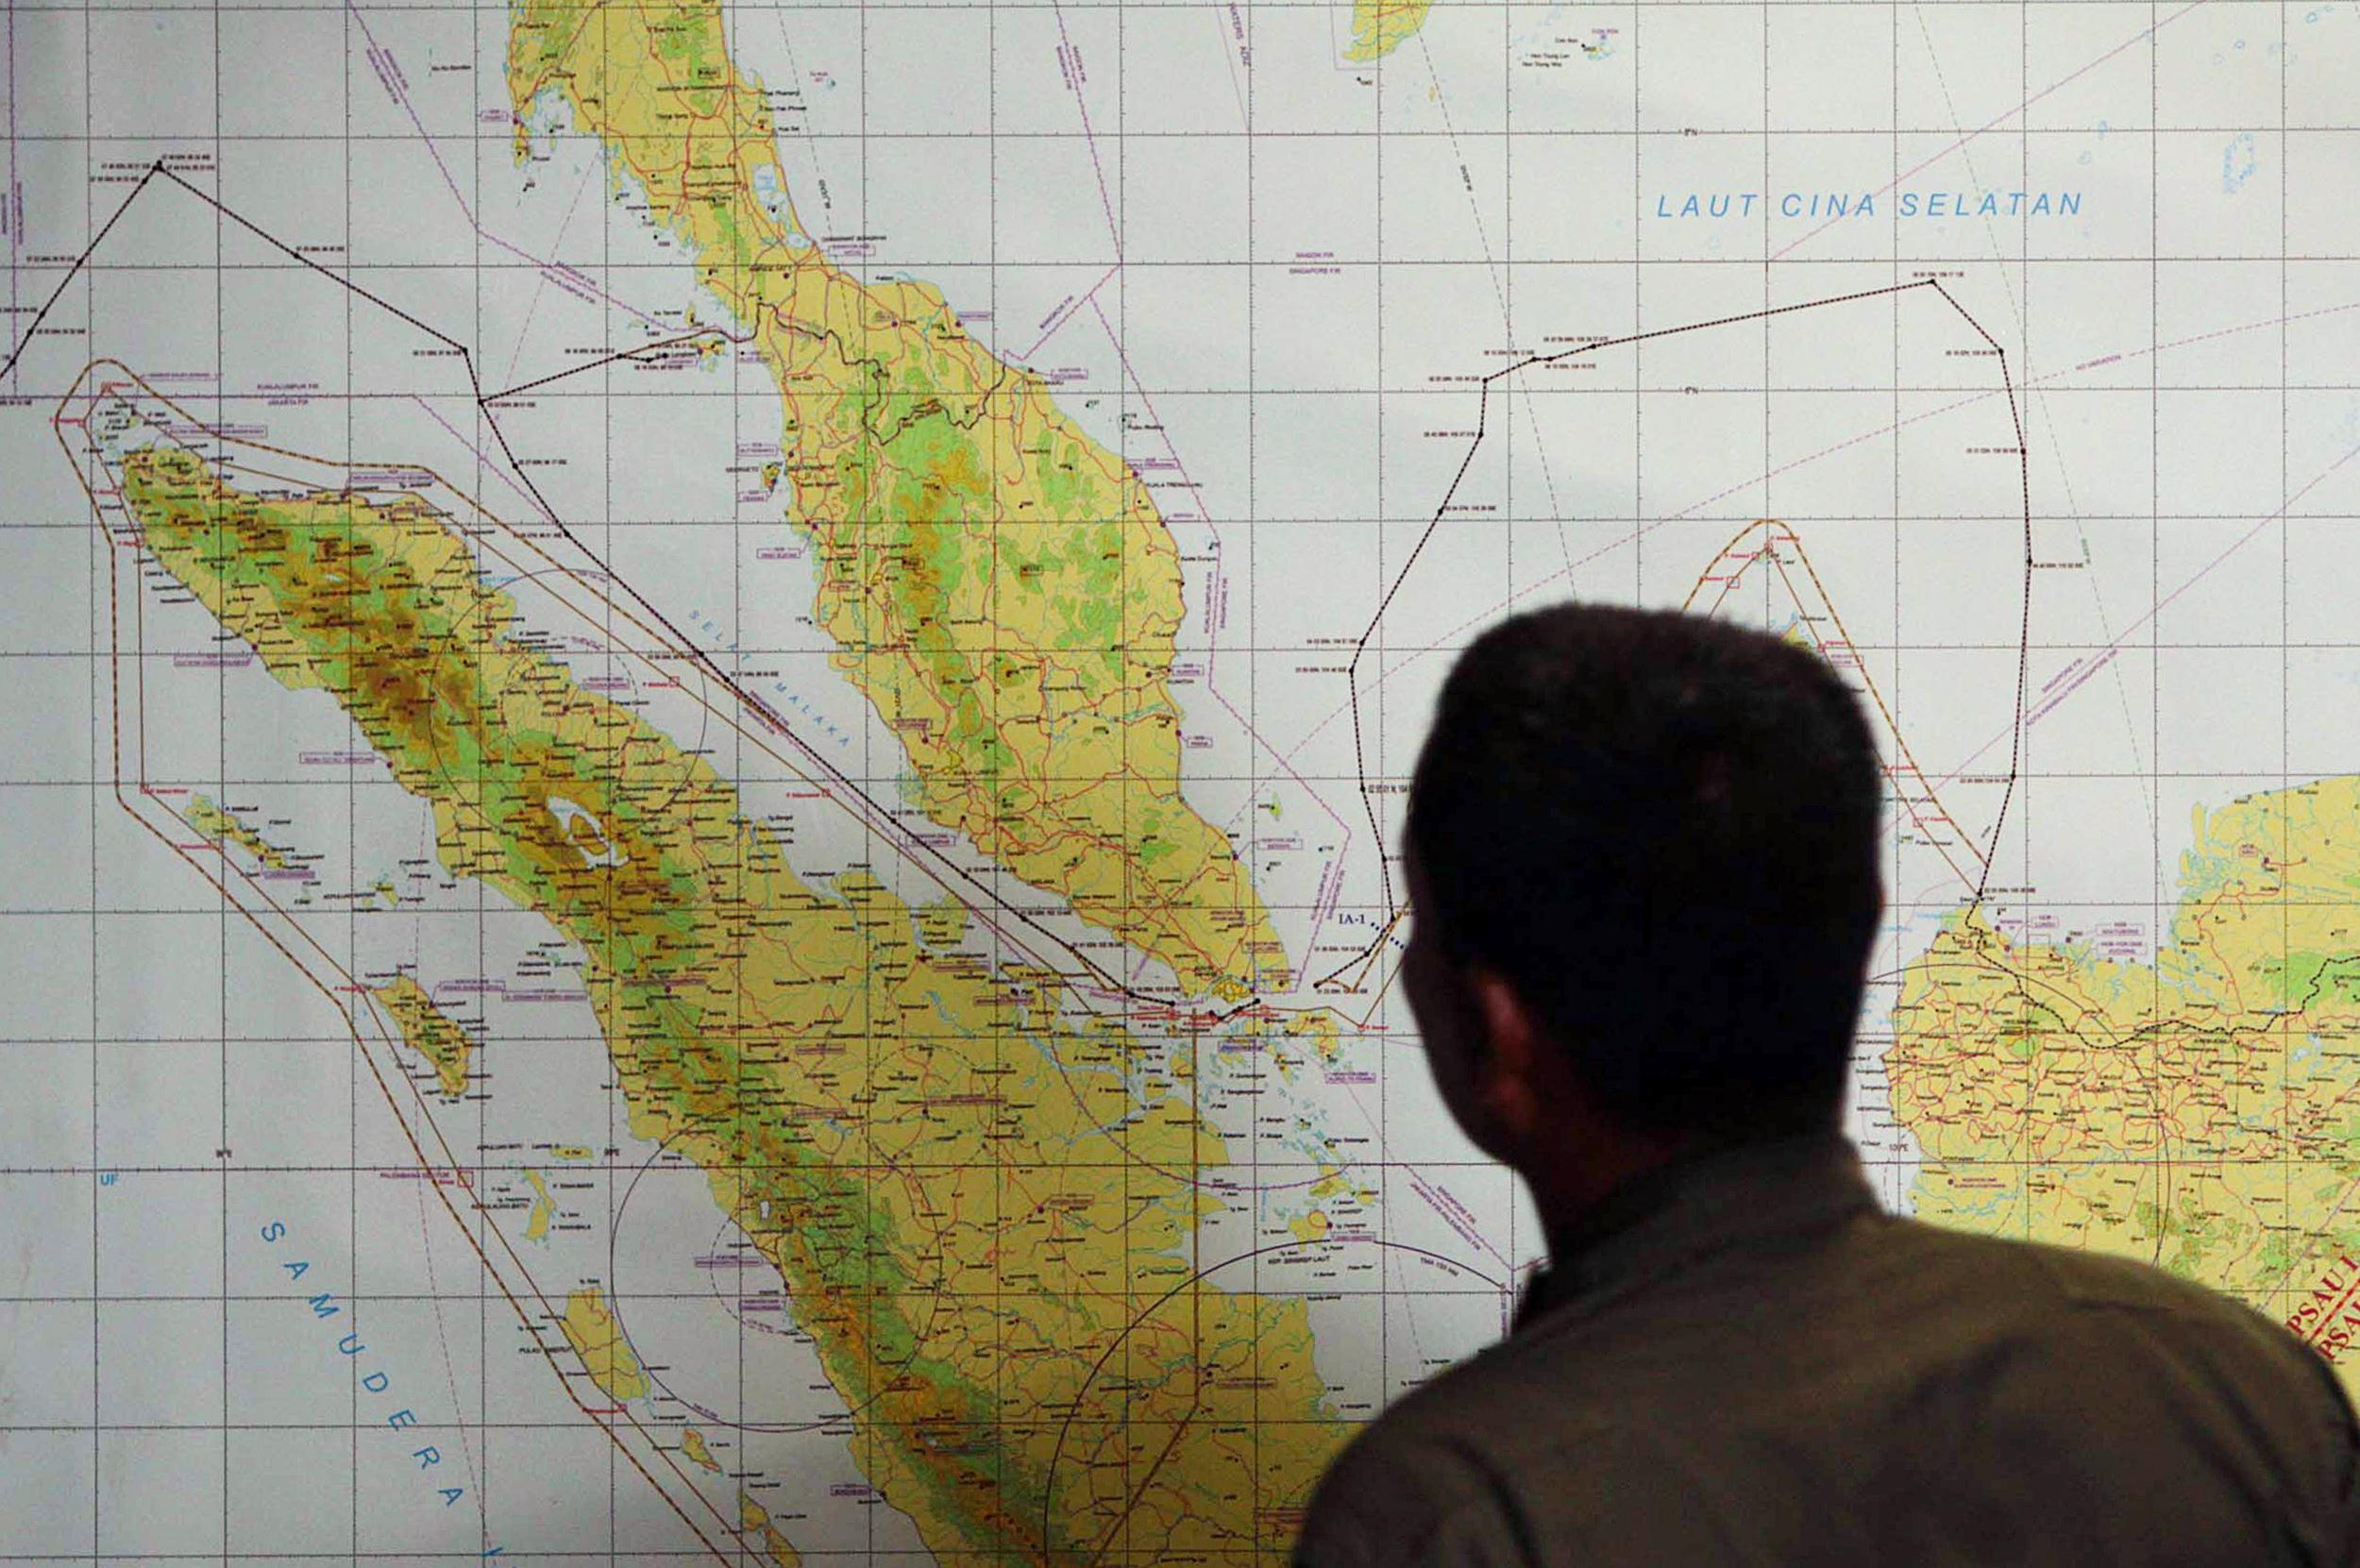 Image: Search operation for the missing Malaysian Airlines flight MH370